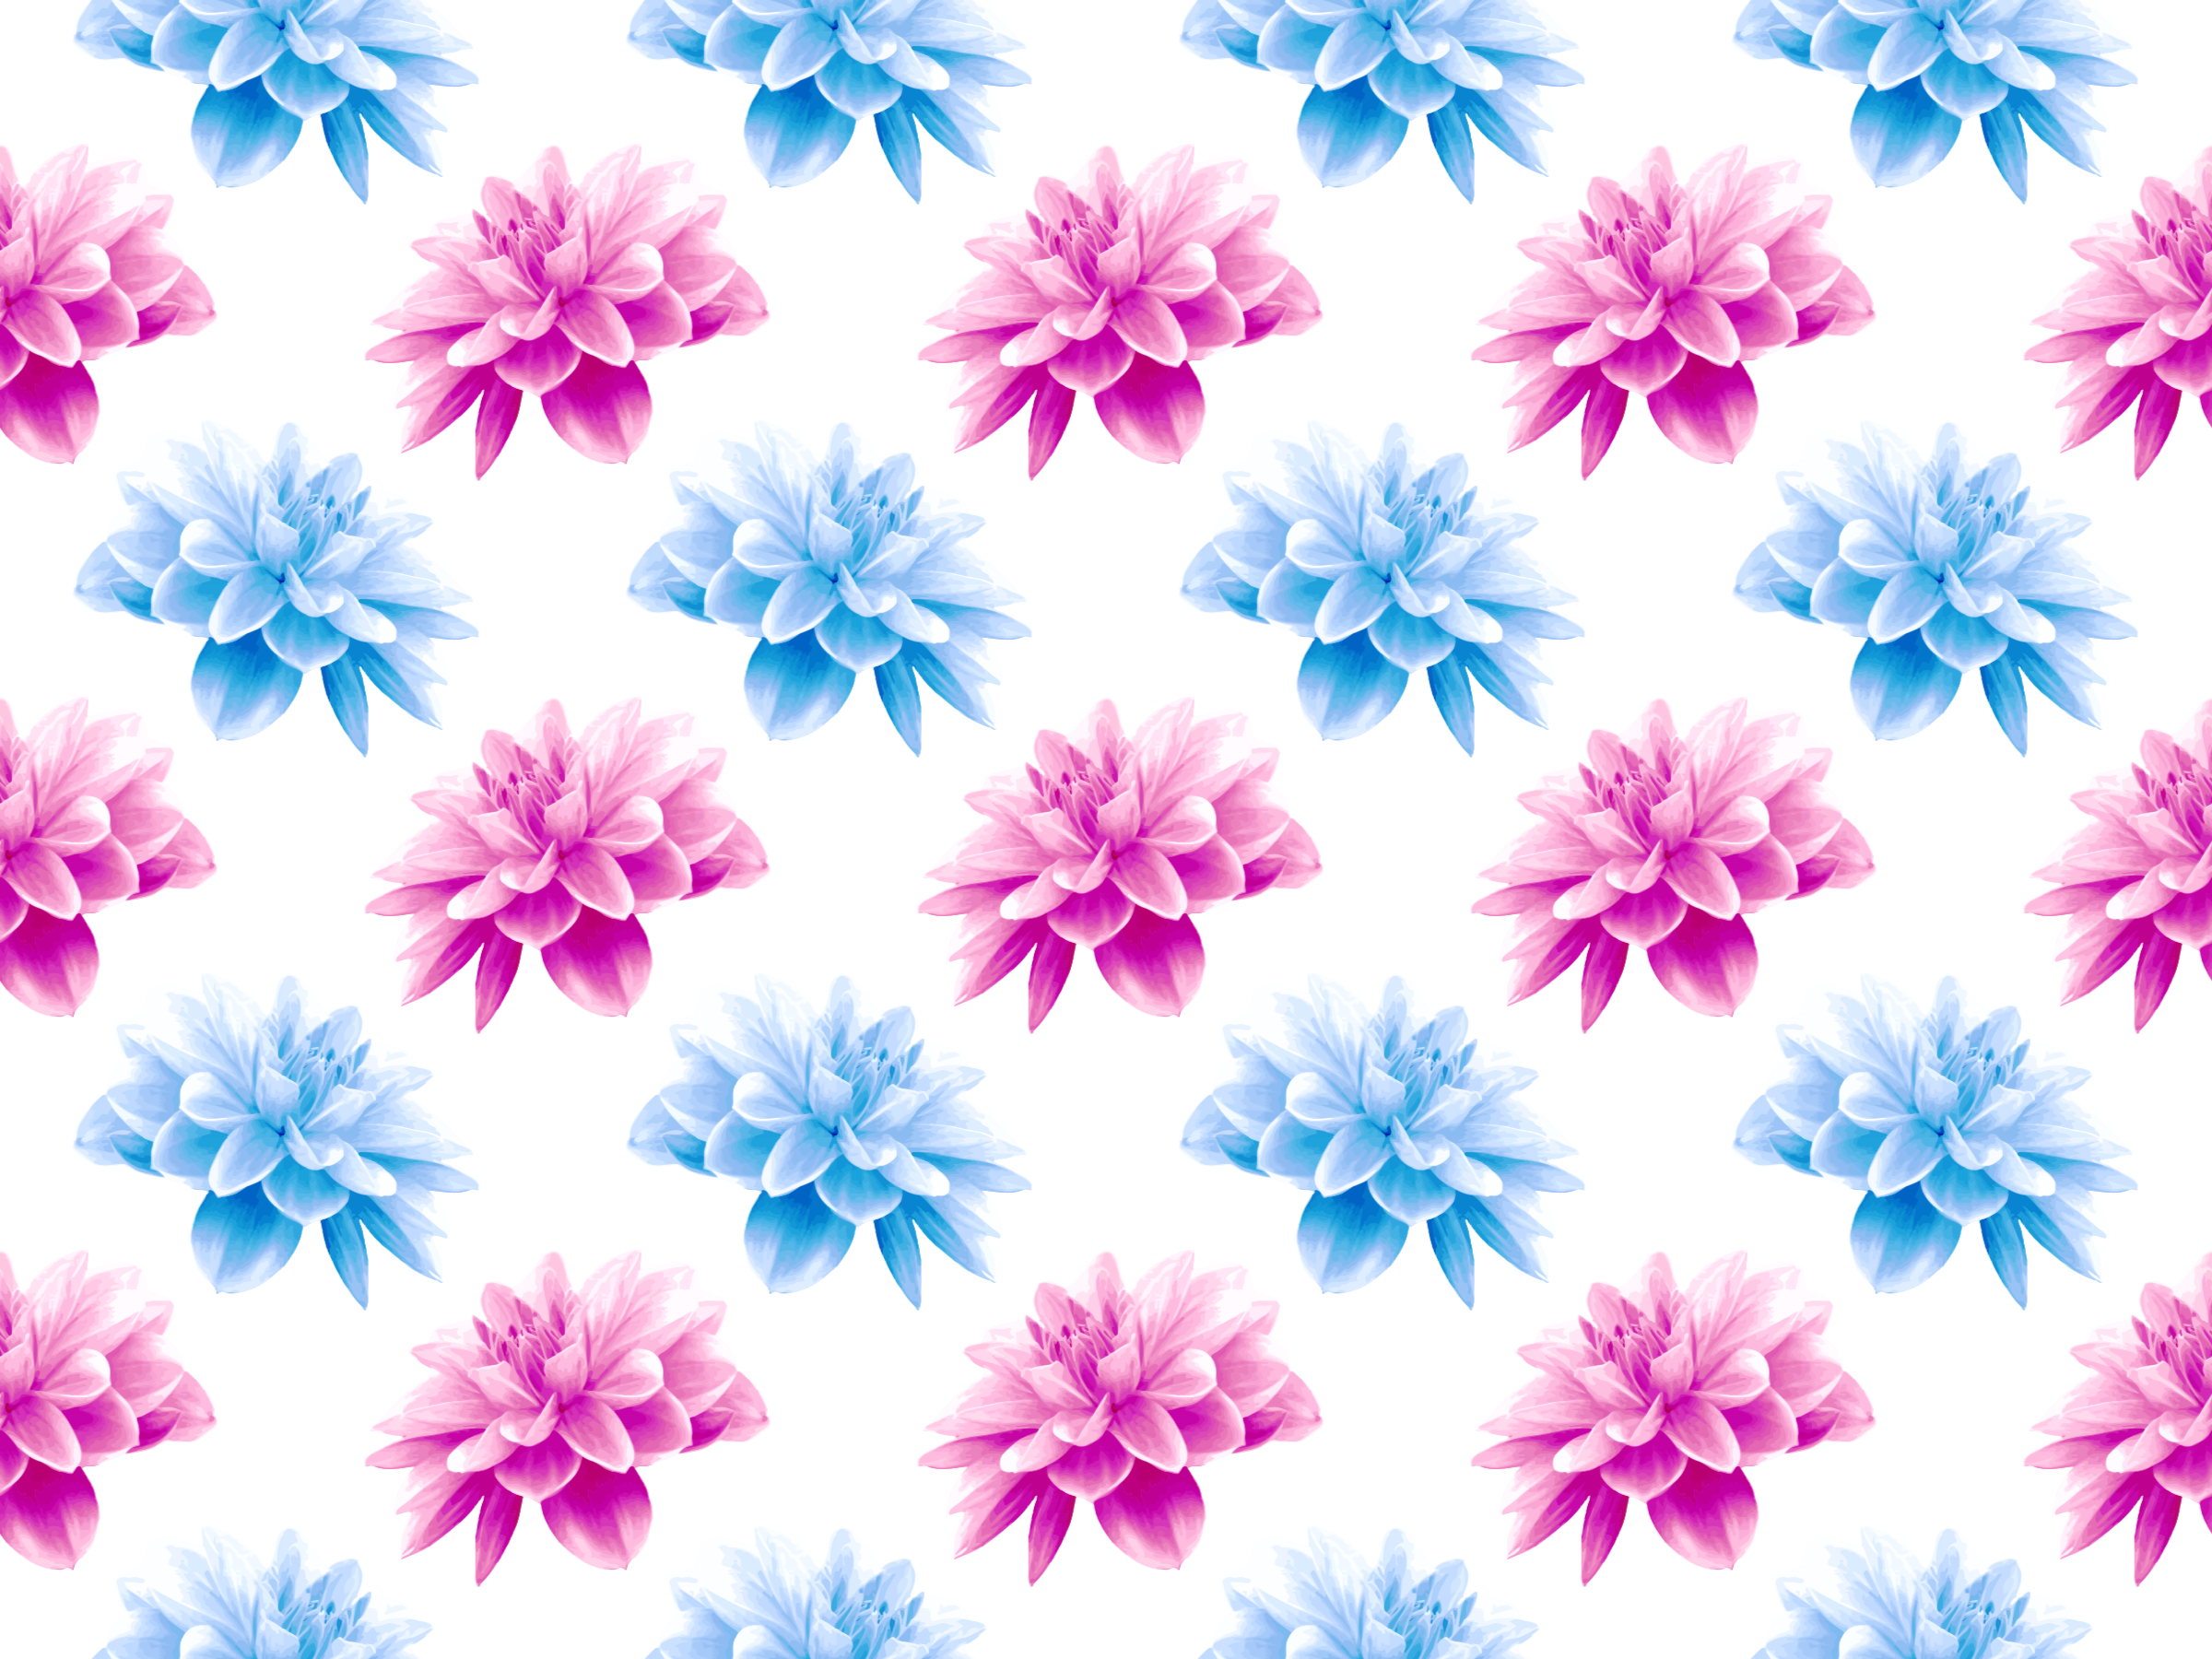 Flower pattern clipart picture free download Clipart - Flower pattern 5 (fuller colours) picture free download